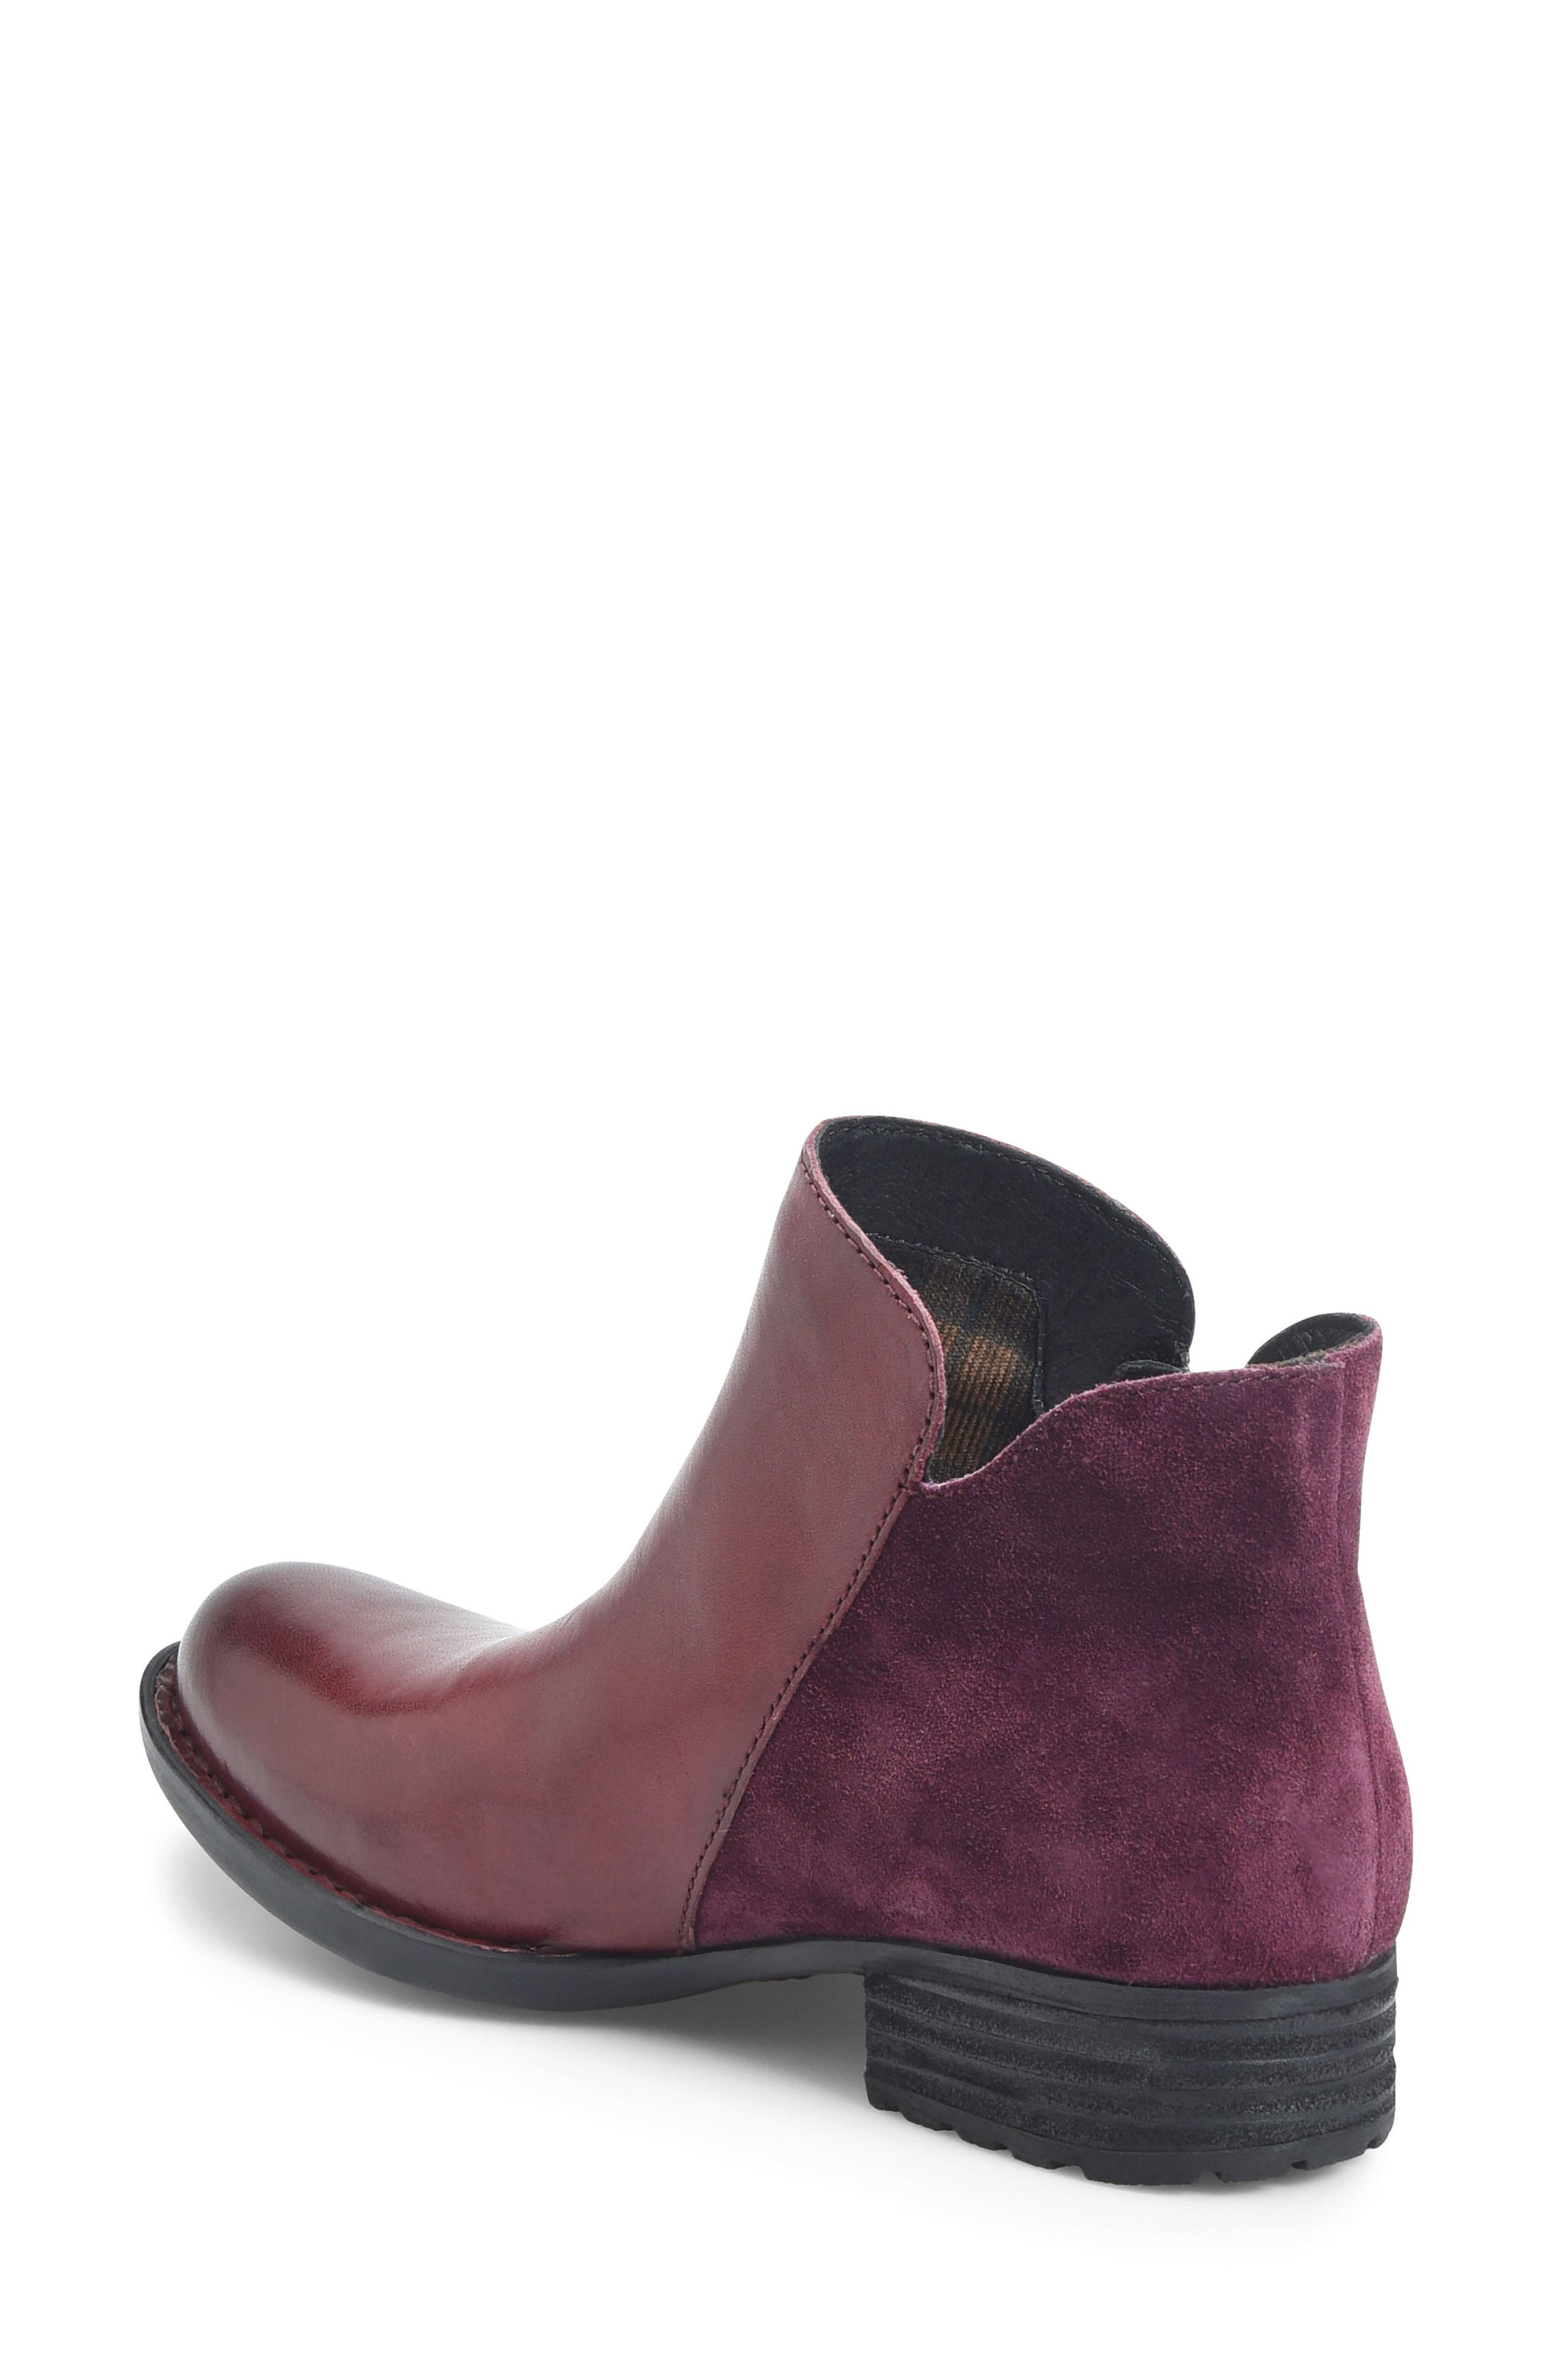 Keefe Bootie,                             Alternate thumbnail 2, color,                             Burgundy/ Purple Combo